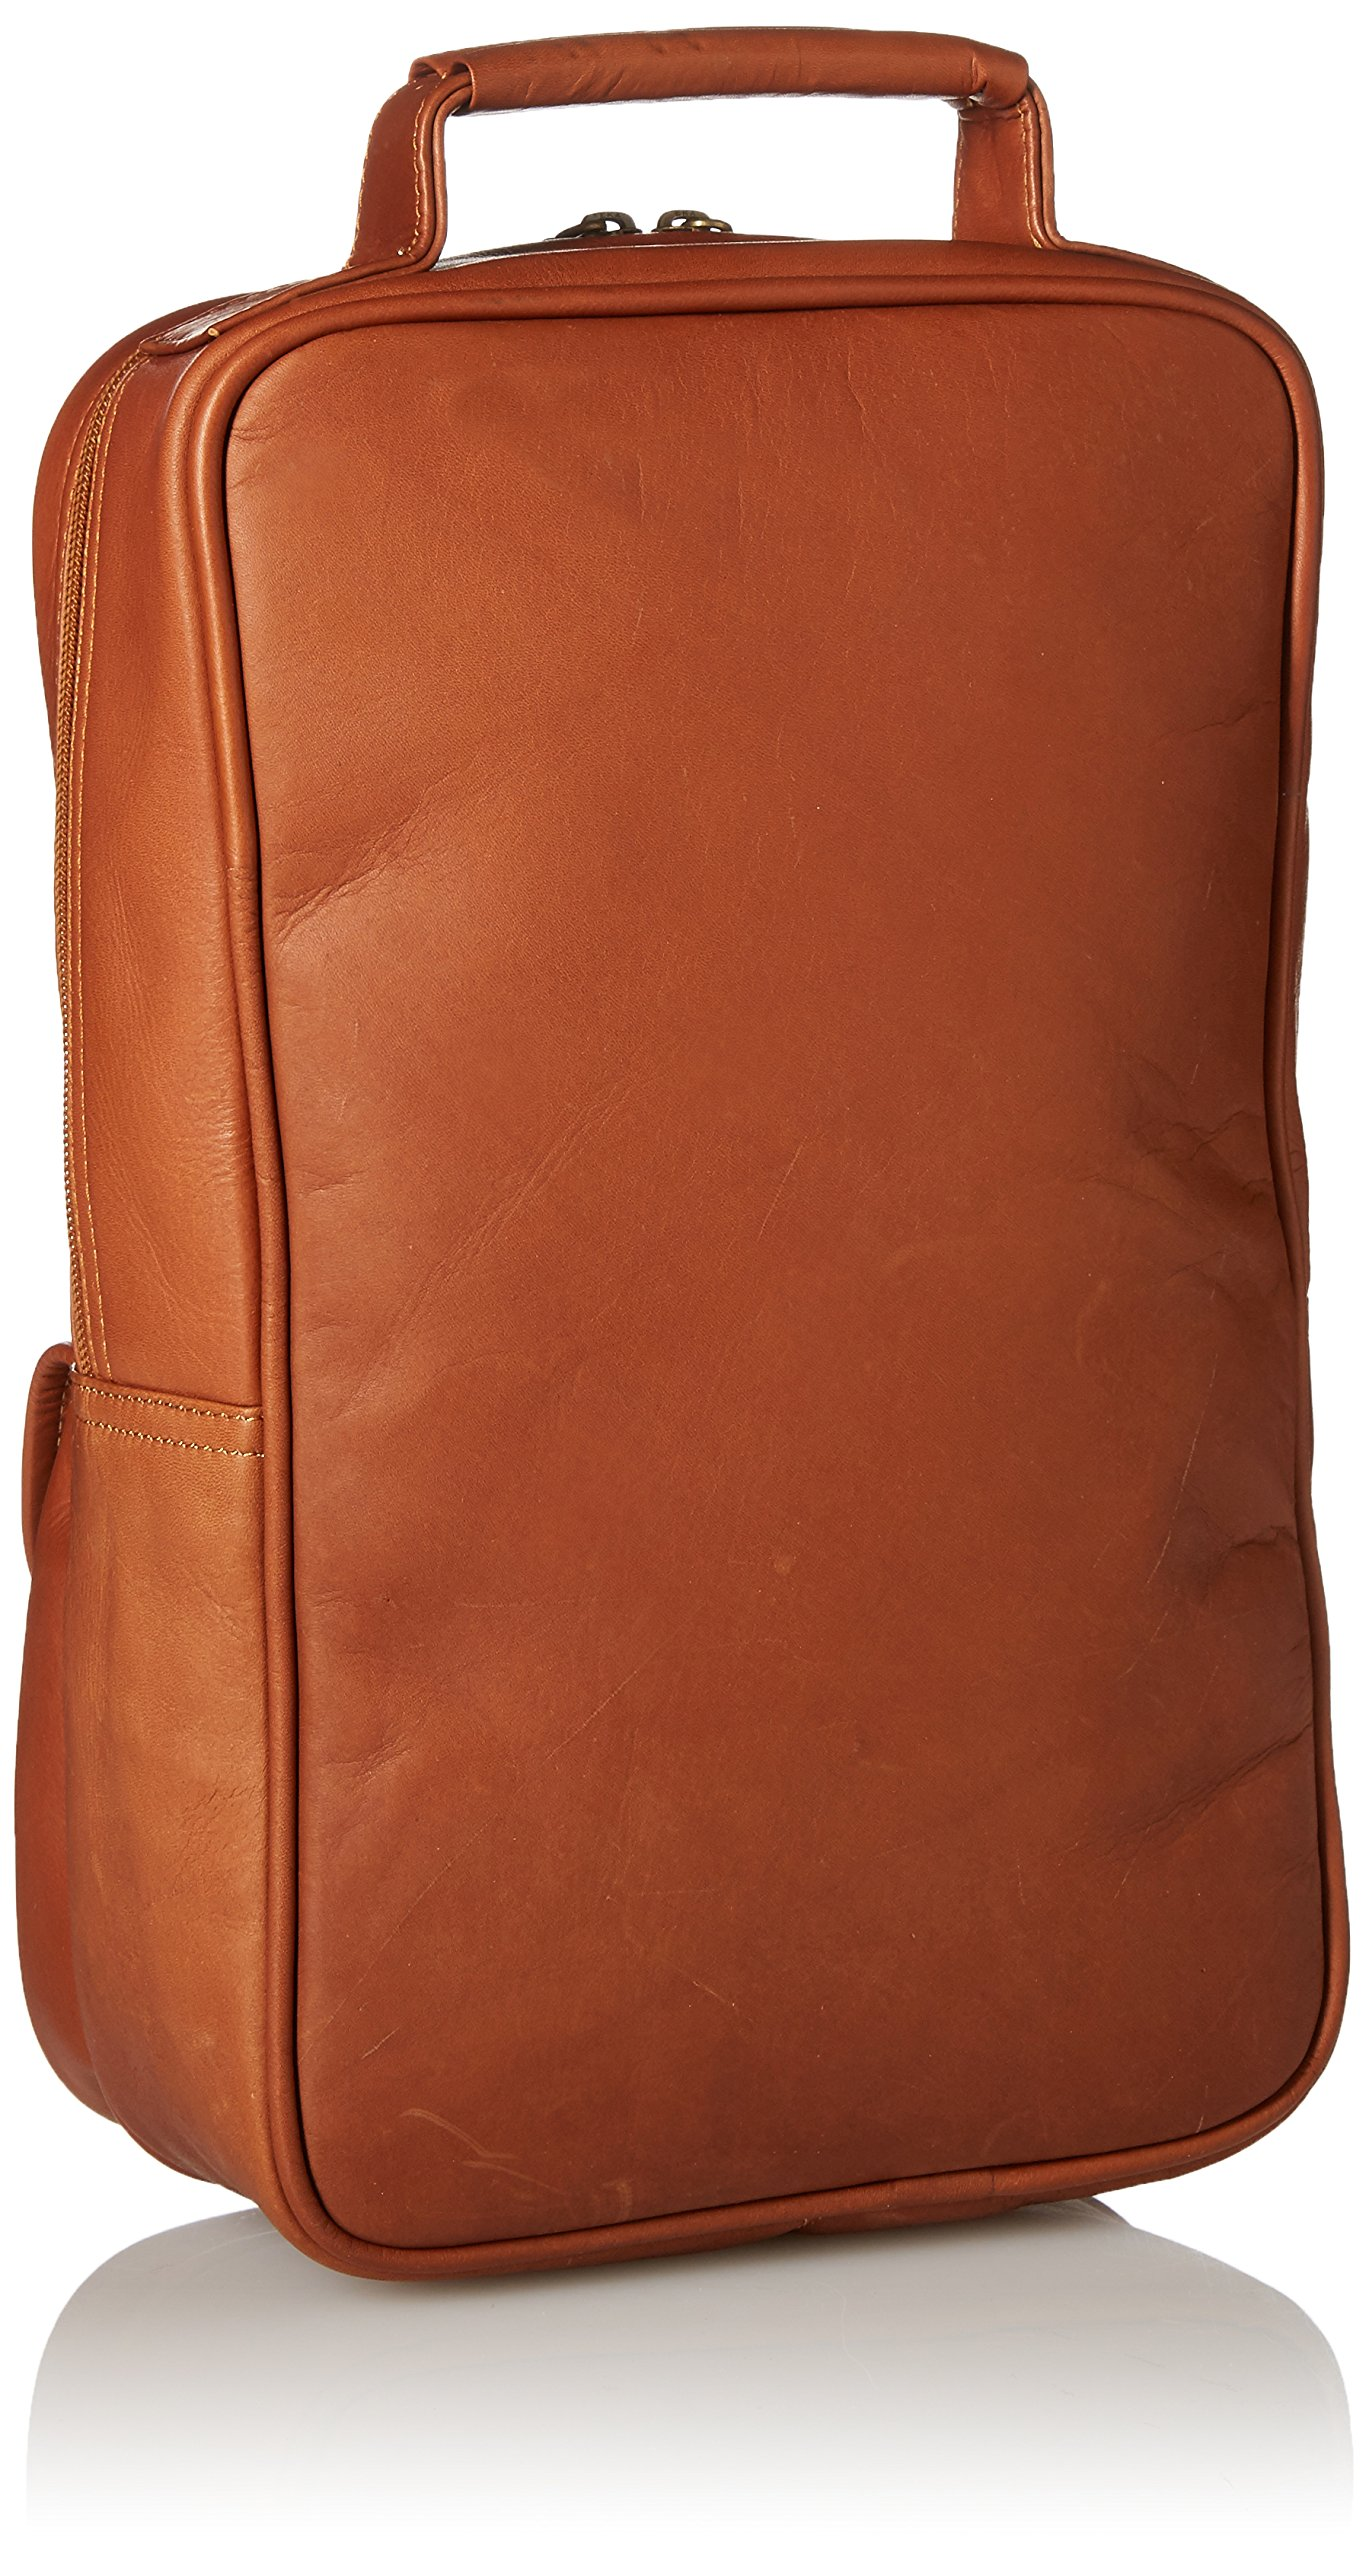 Claire Chase Upright Golf Shoe Bag, Saddle by ClaireChase (Image #2)